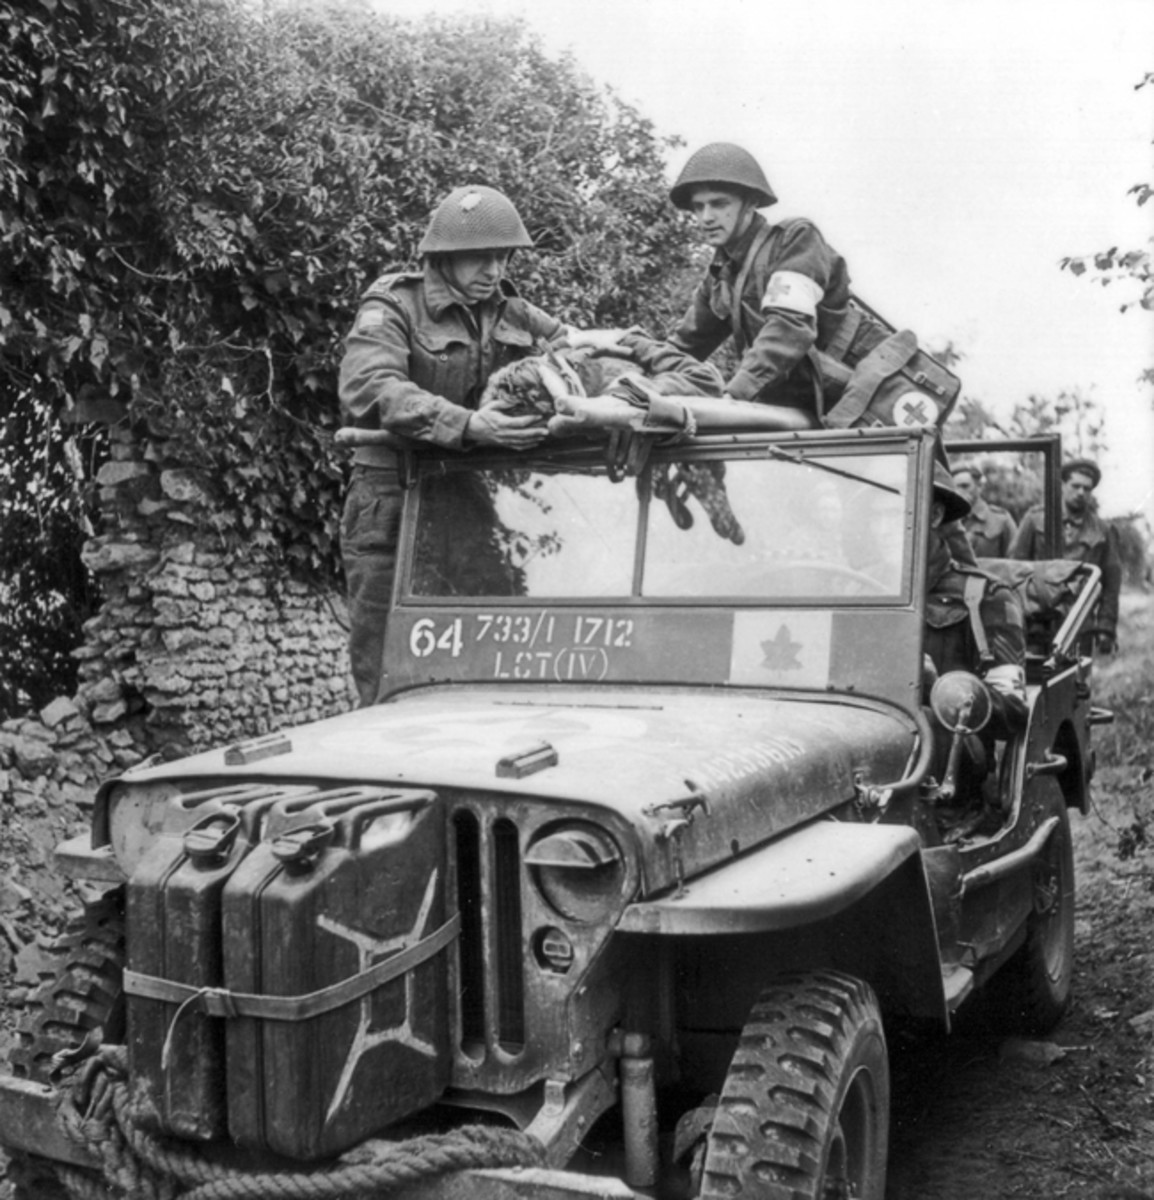 Canadian medical personnel and a chaplain from the Canadian 3rd Infantry Division use a Jeep to evacuate wounded soldiers during the fighting in the vicinity of Caen, France, July 15, 1944.